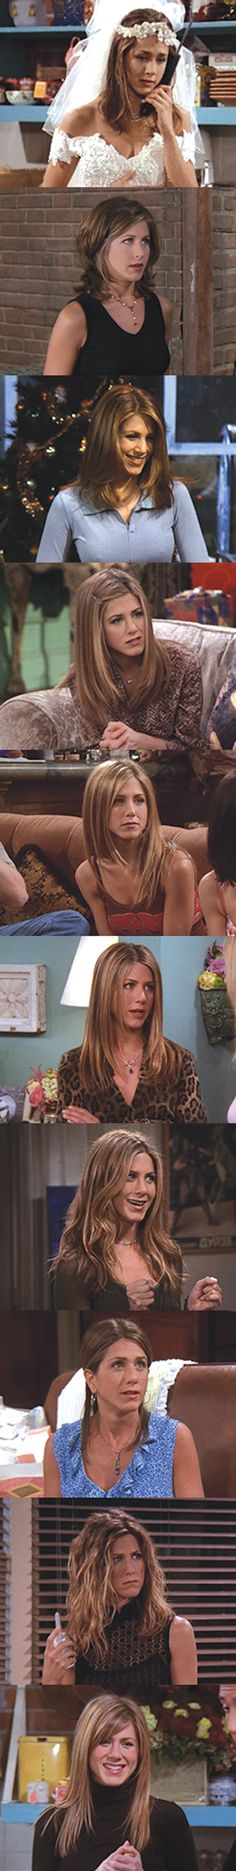 Here's how Rachel (and Rachel's hair) evolved over 10 years of Friends.